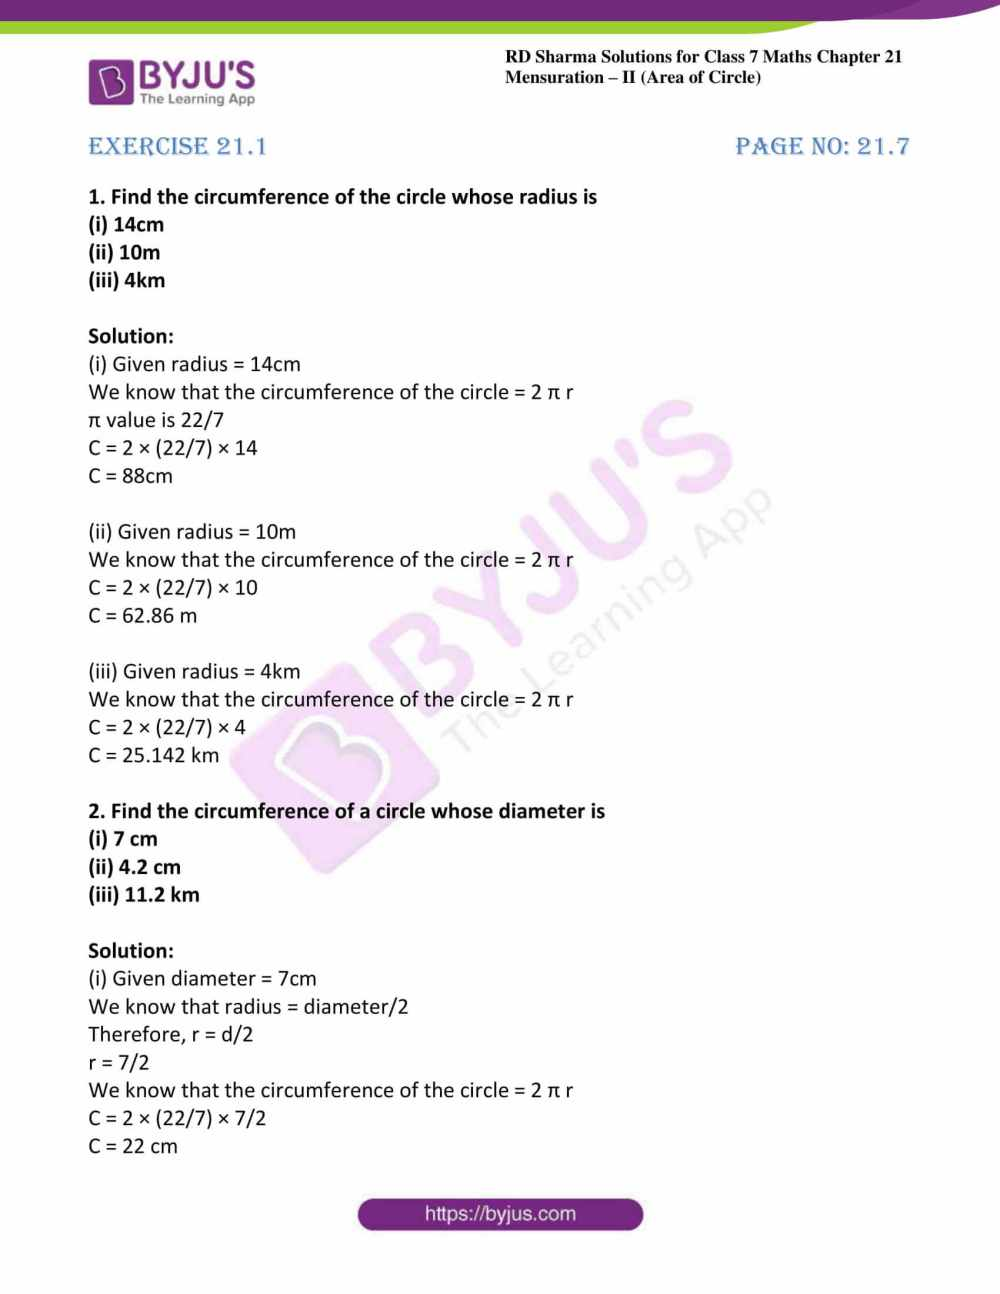 medium resolution of RD Sharma Solutions for Class 7 Maths Chapter 21 - Mensuration - II (Area  of Circle) - Free PDFs are available here